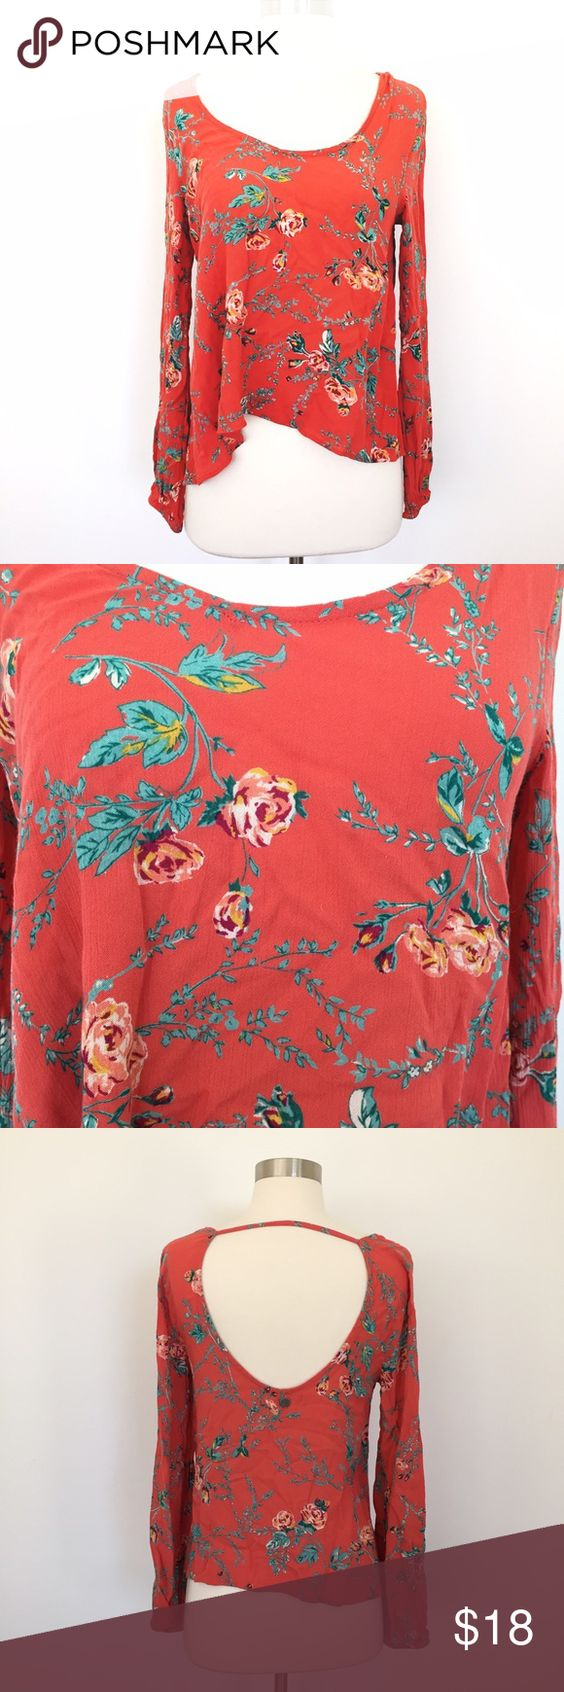 Billabong: Orange Red Floral Print Top Scoop Back Beautiful top with relaxed off the shoulder fit. Lovely material and pattern. Never worn. Billabong Tops Blouses